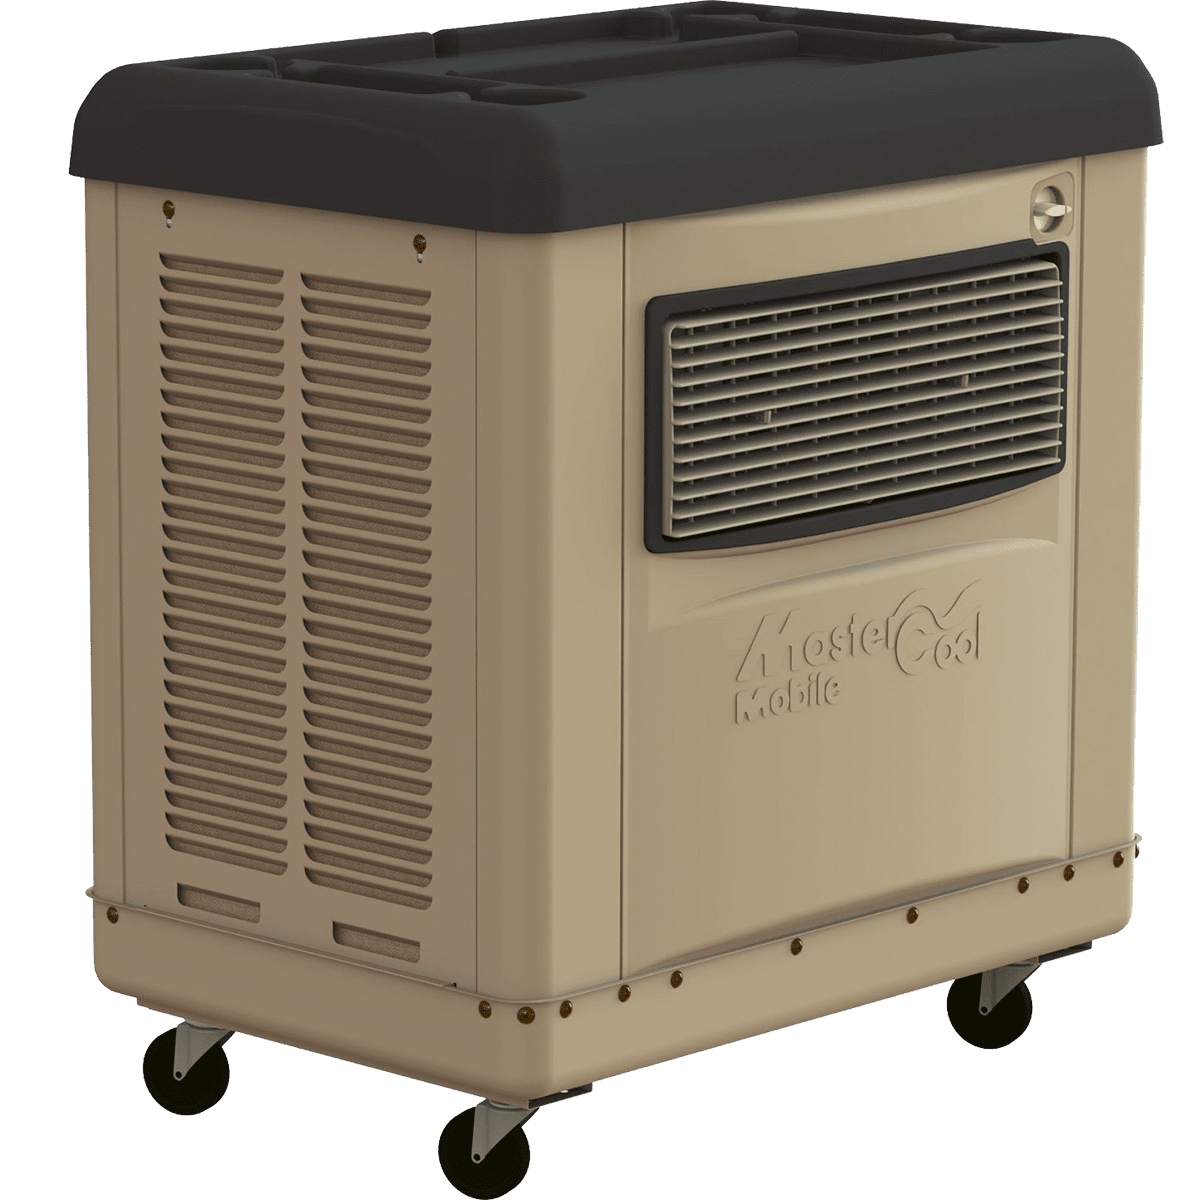 Mastercool Mmbt12 Portable Swamp Cooler Sylvane